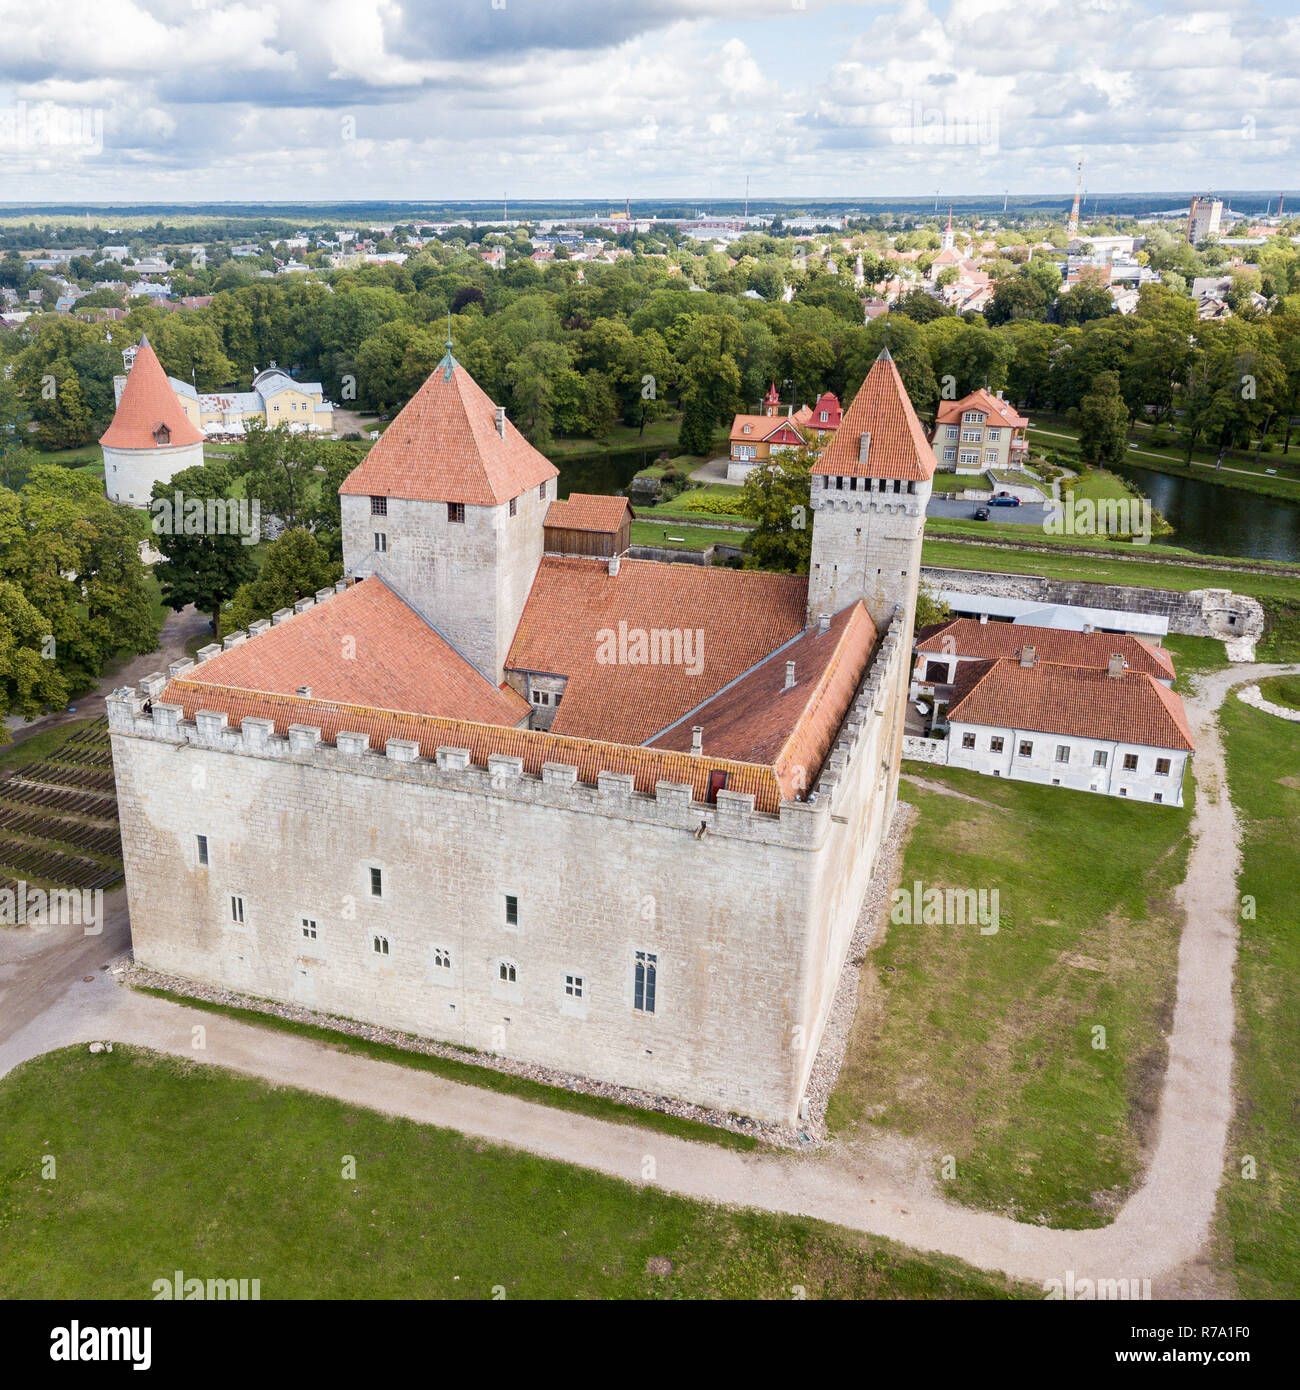 Fortifications of Kuressaare episcopal castle (star fort, bastion fortress) built by Teutonic Order, Saaremaa island, western Estonia, aerial view. - Stock Image